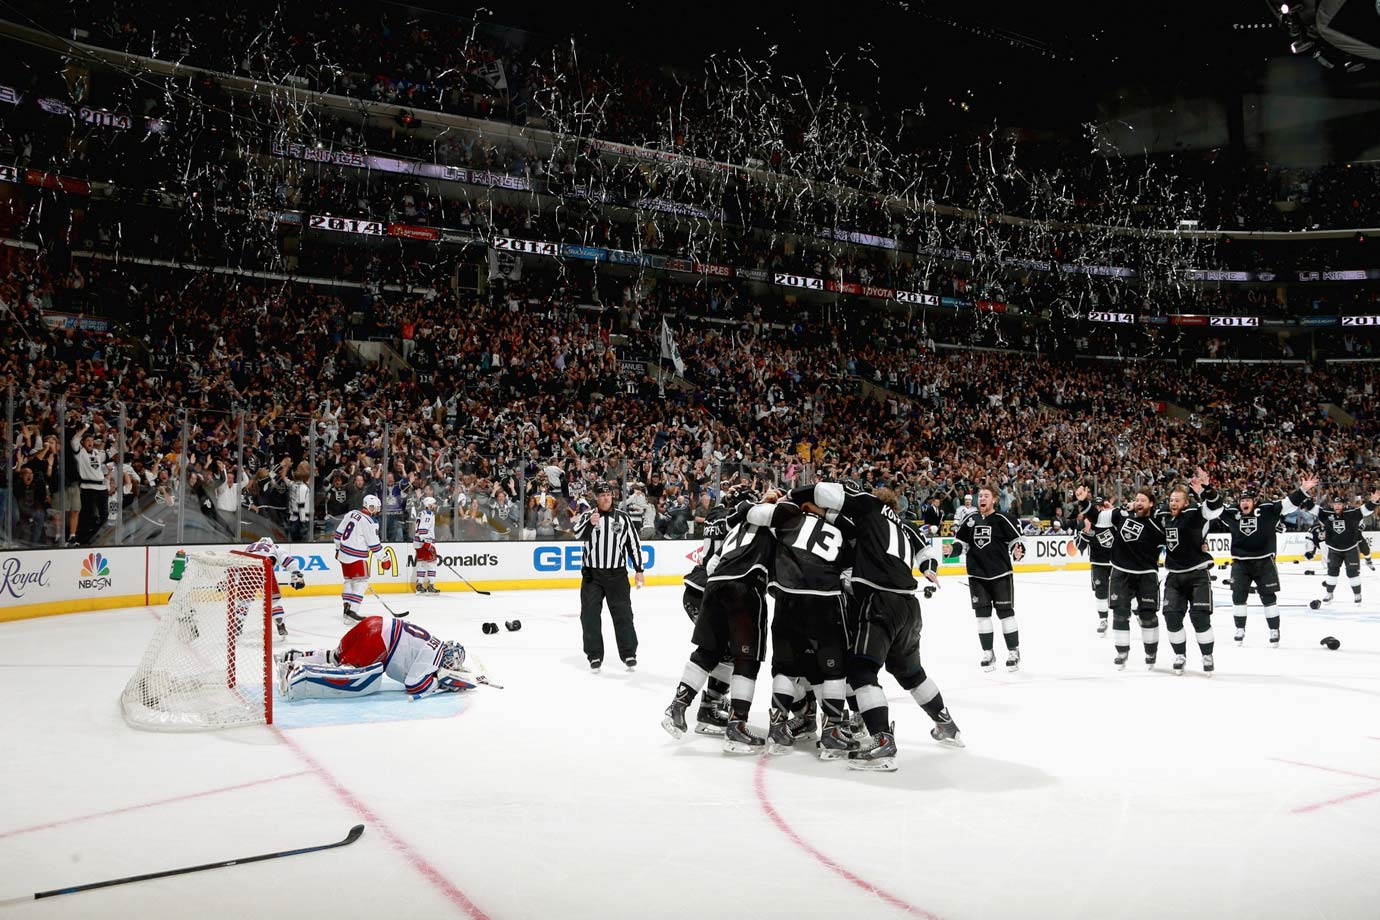 New York Rangers goalie Henrik Lundqvist was despondent after the Kings' Alec Martinez s cored the Stanley-Cup clinching goal in double overtime of Game 5 in Los Angeles.